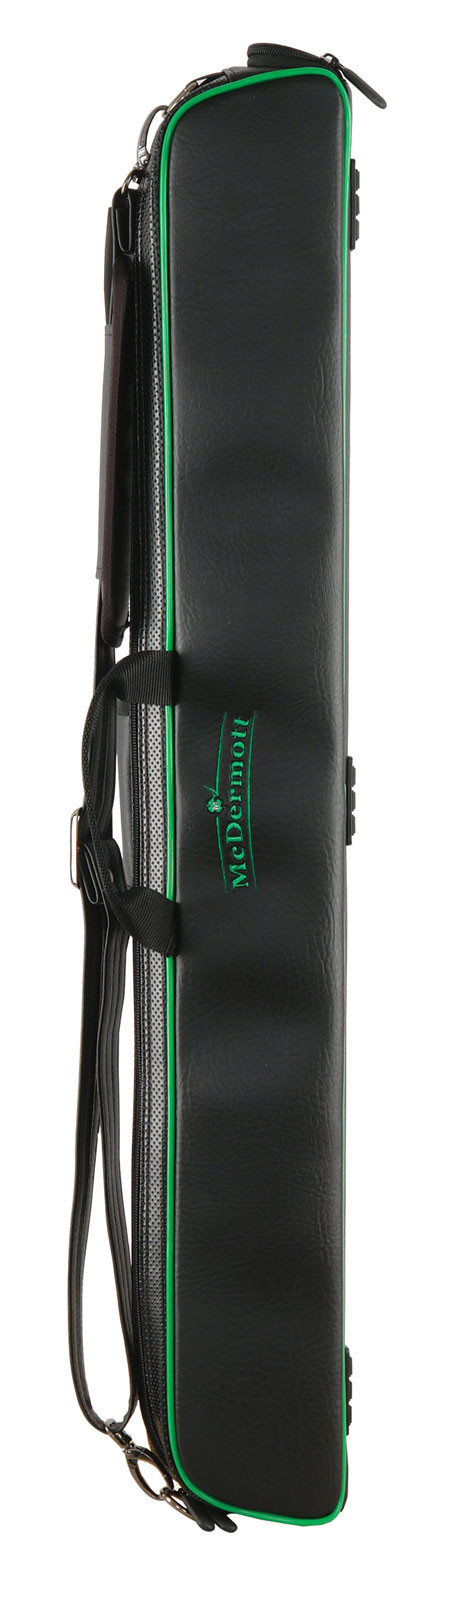 McDermott 75-0924 2x3 Black Soft Pool Cue Case